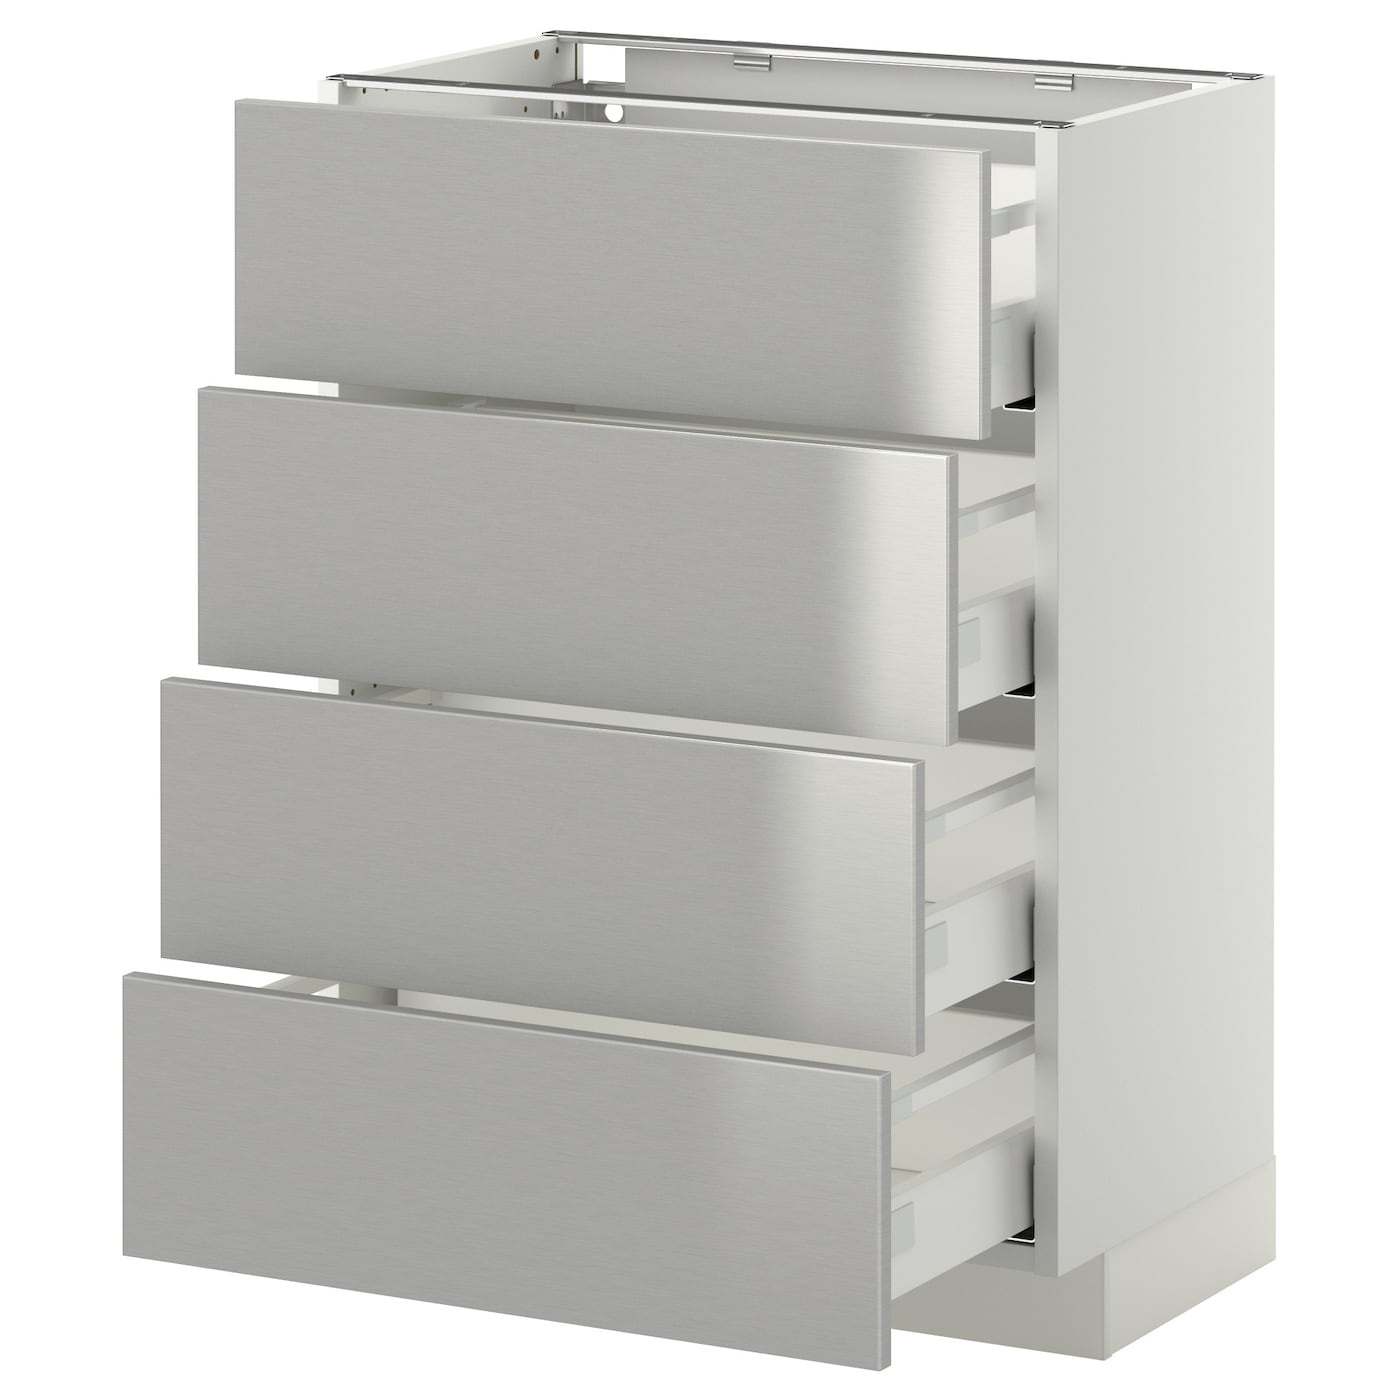 Metod maximera base cab 4 frnts 4 drawers white grevsta for Stainless steel kitchen base cabinets